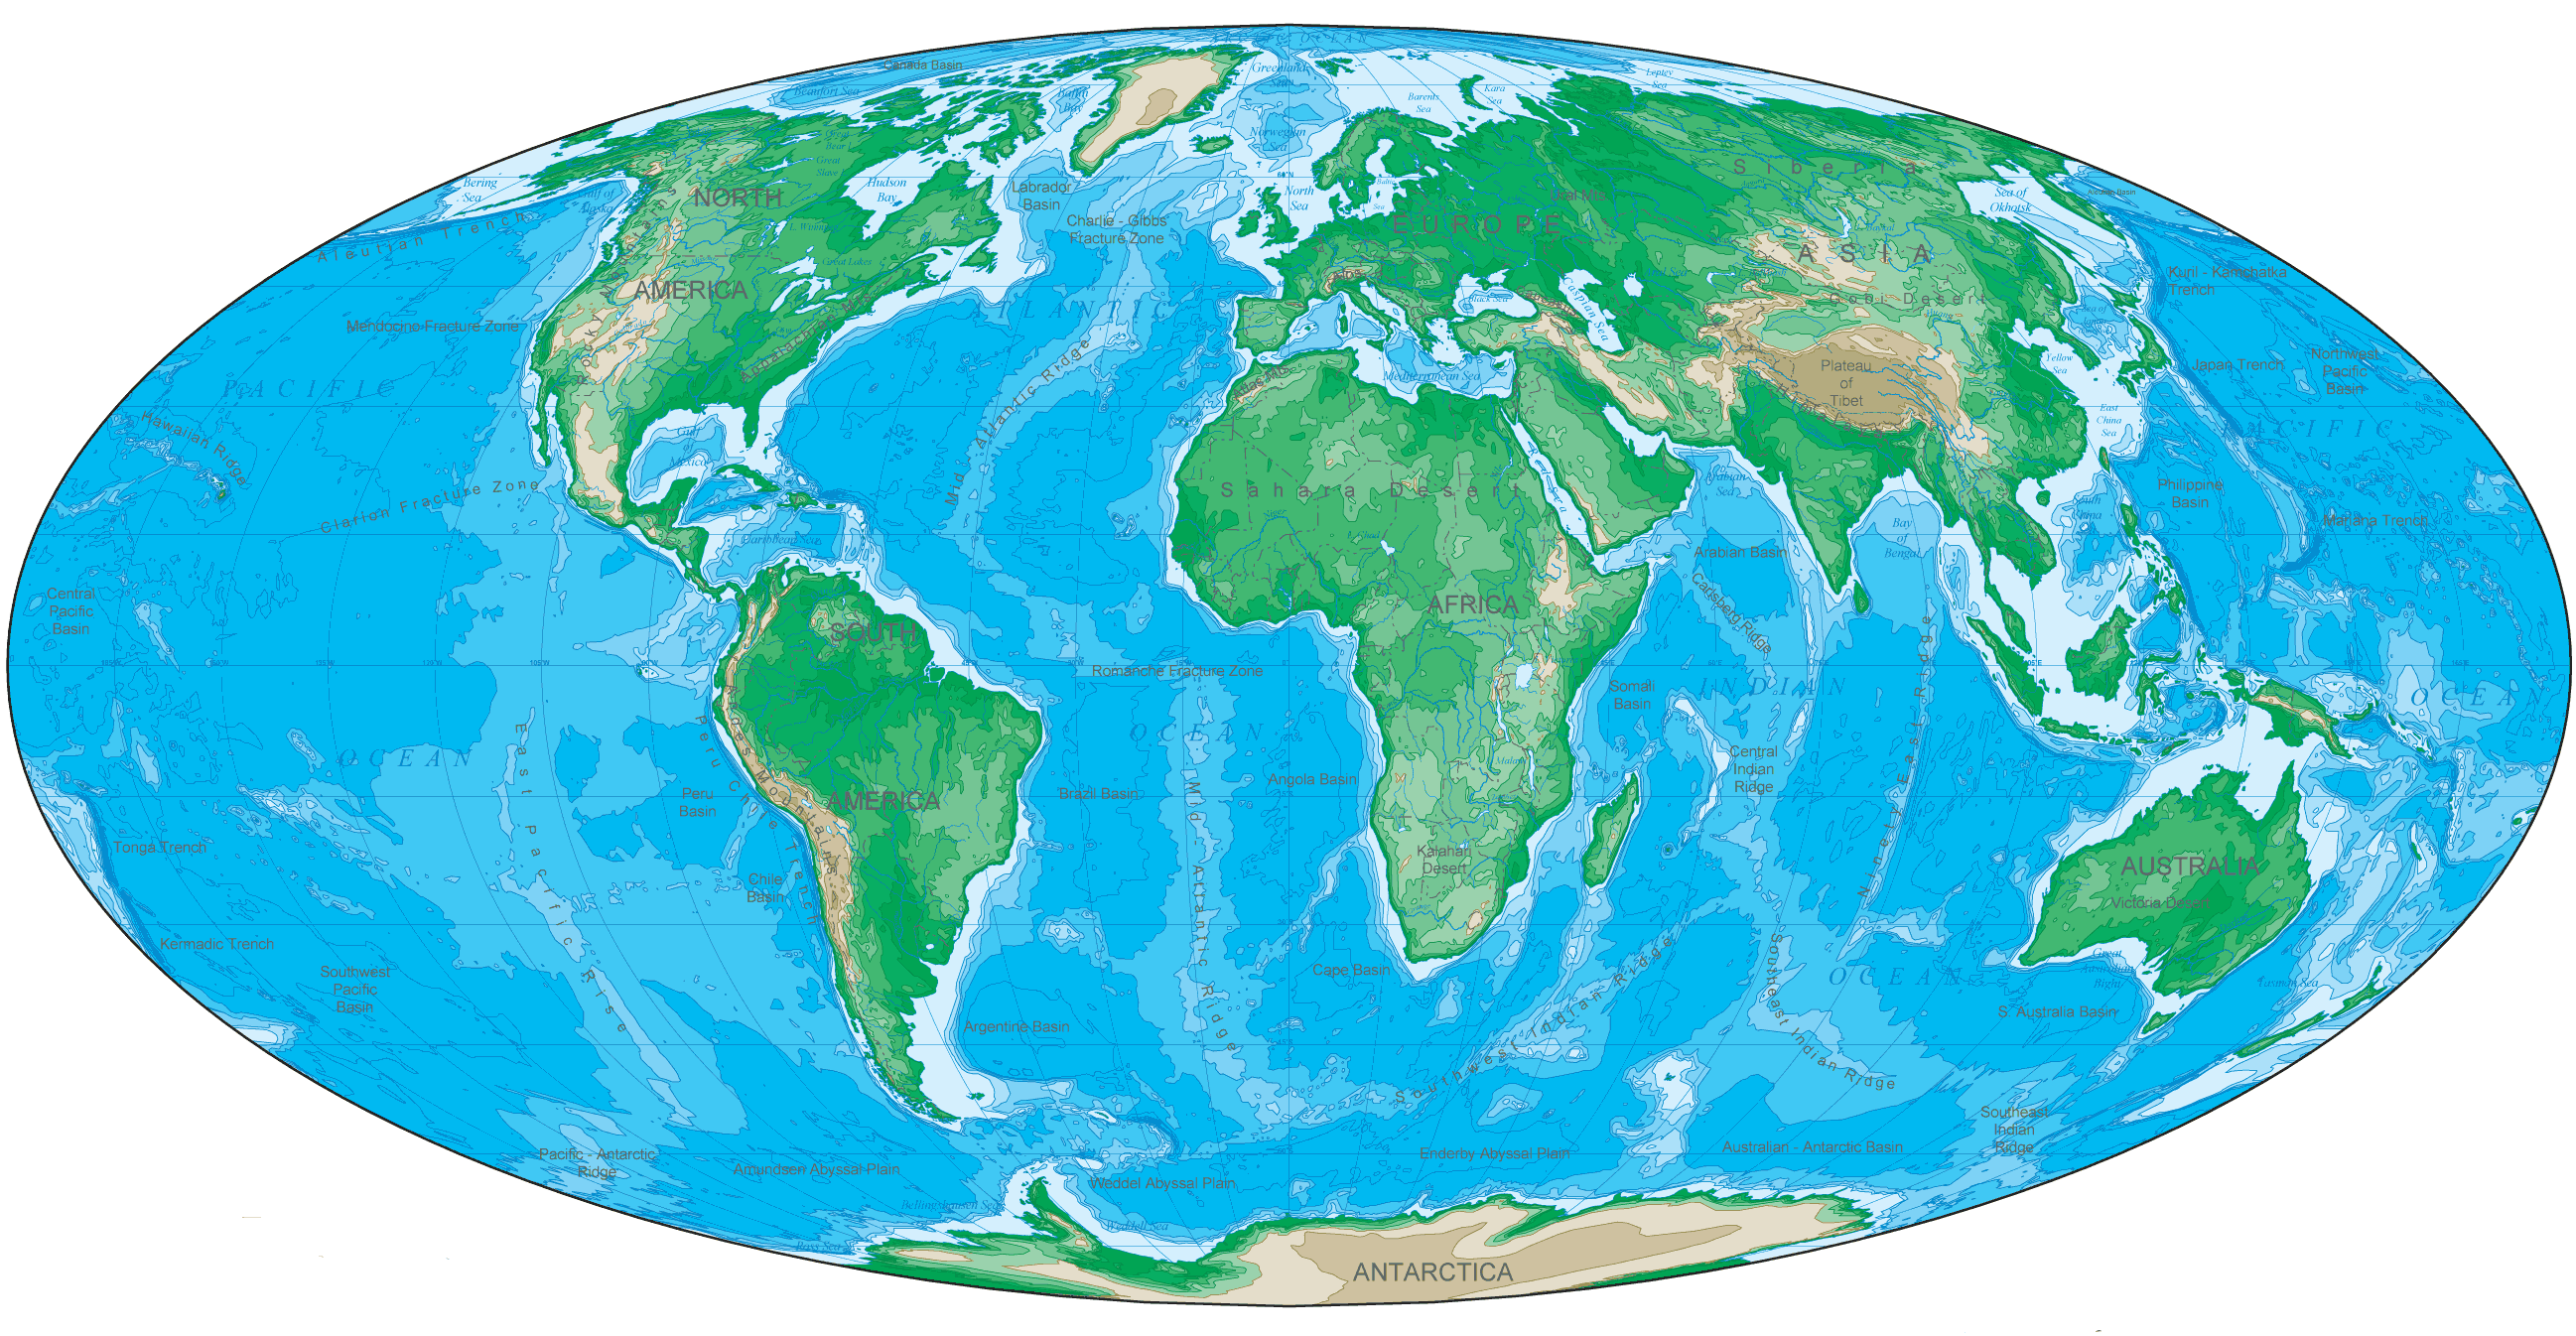 Oval shaped world map mapsof oval shaped world map the world maps gumiabroncs Images